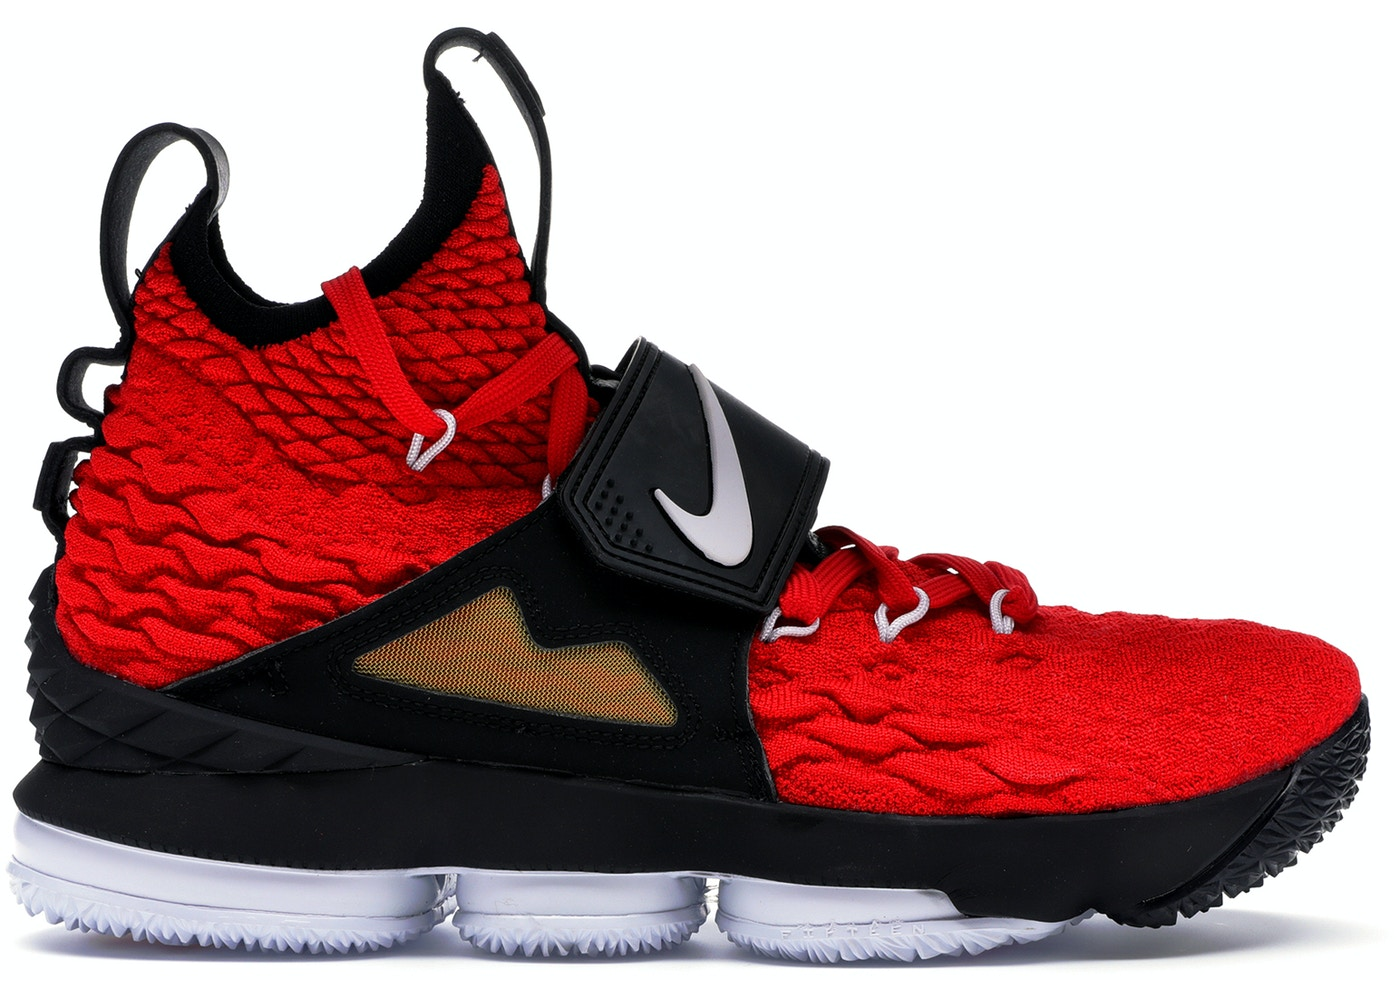 watch e2933 66567 LeBron 15 Red Diamond Turf - AO9144-600